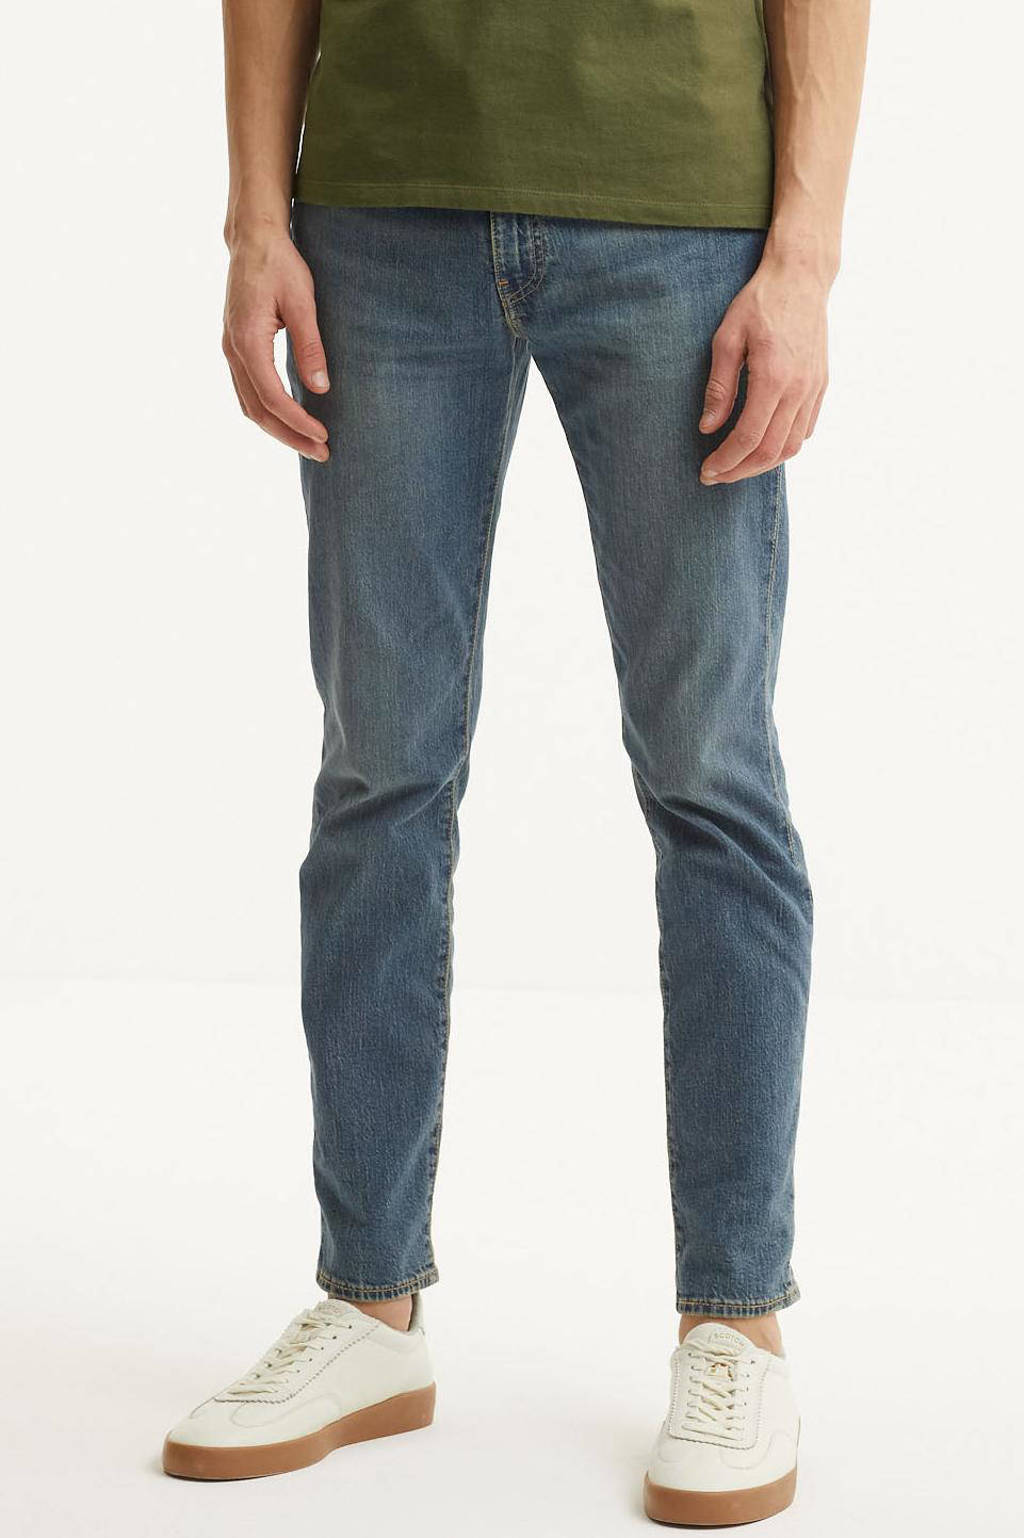 Levi's 511 slim fit jeans eazy there itis, Eazy there itis